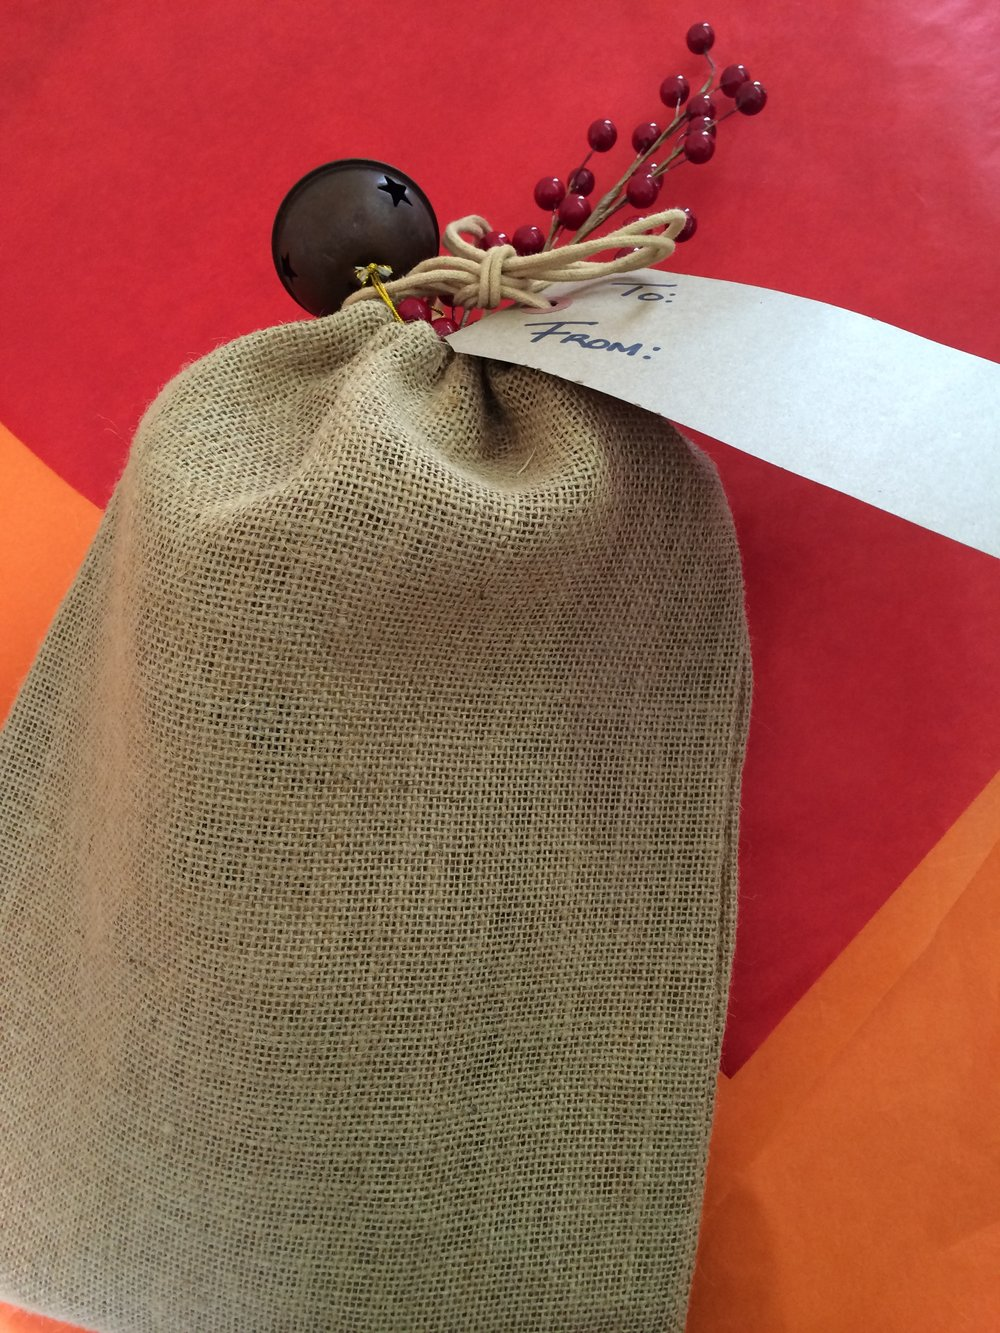 Coffee wrap in burlap for client gifts